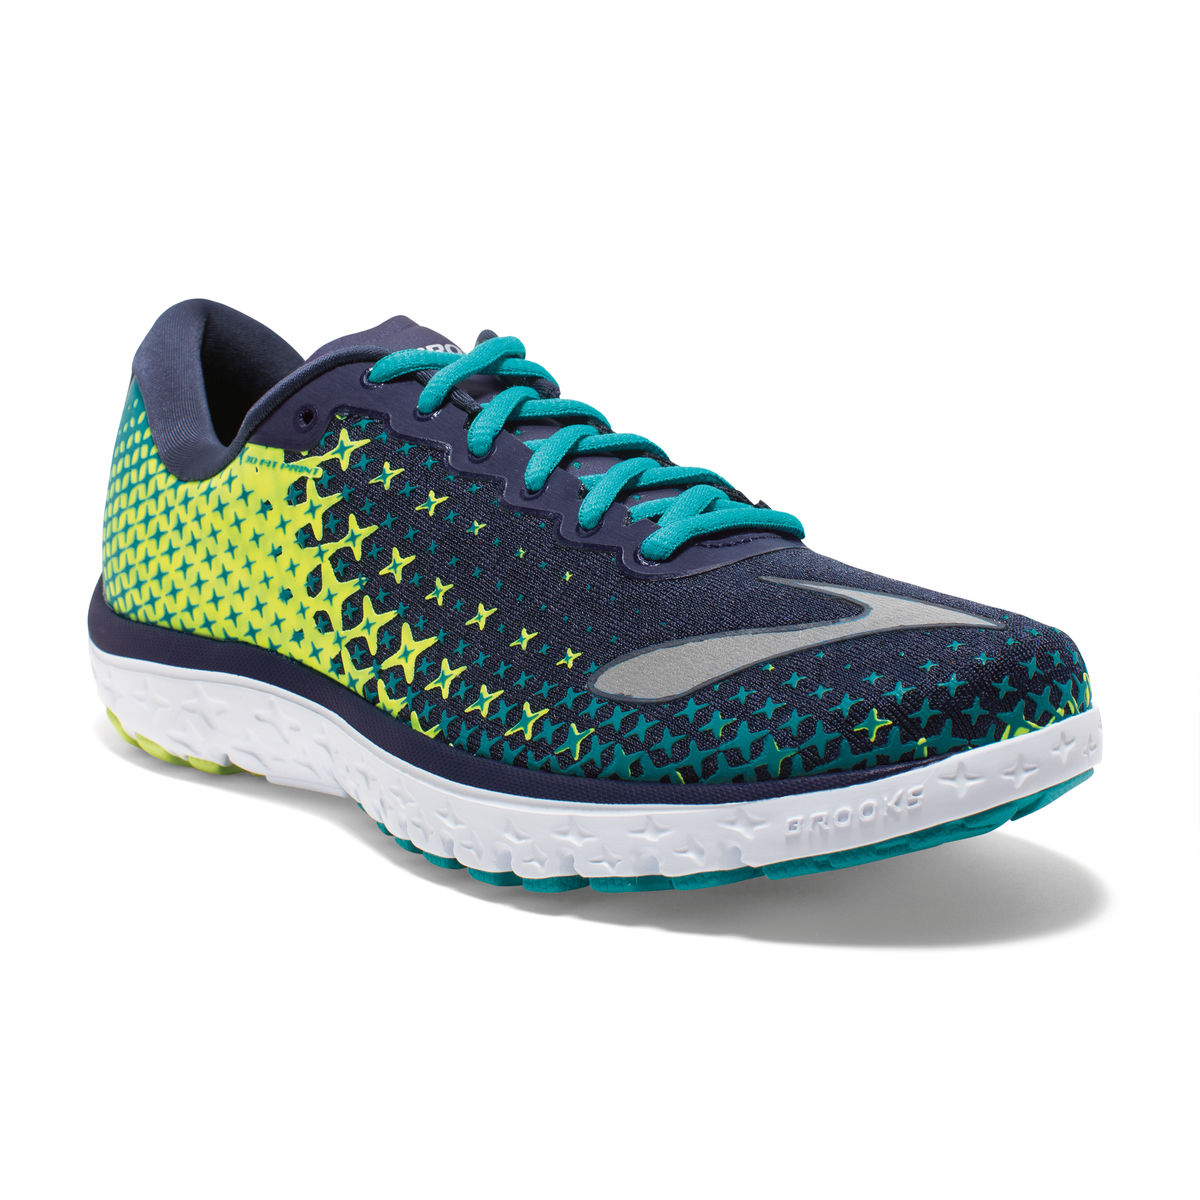 85589a89a75e7 Details about Women s Brooks PureFlow 5 Running Shoe Peacoat Navy Nightlife  Lapis